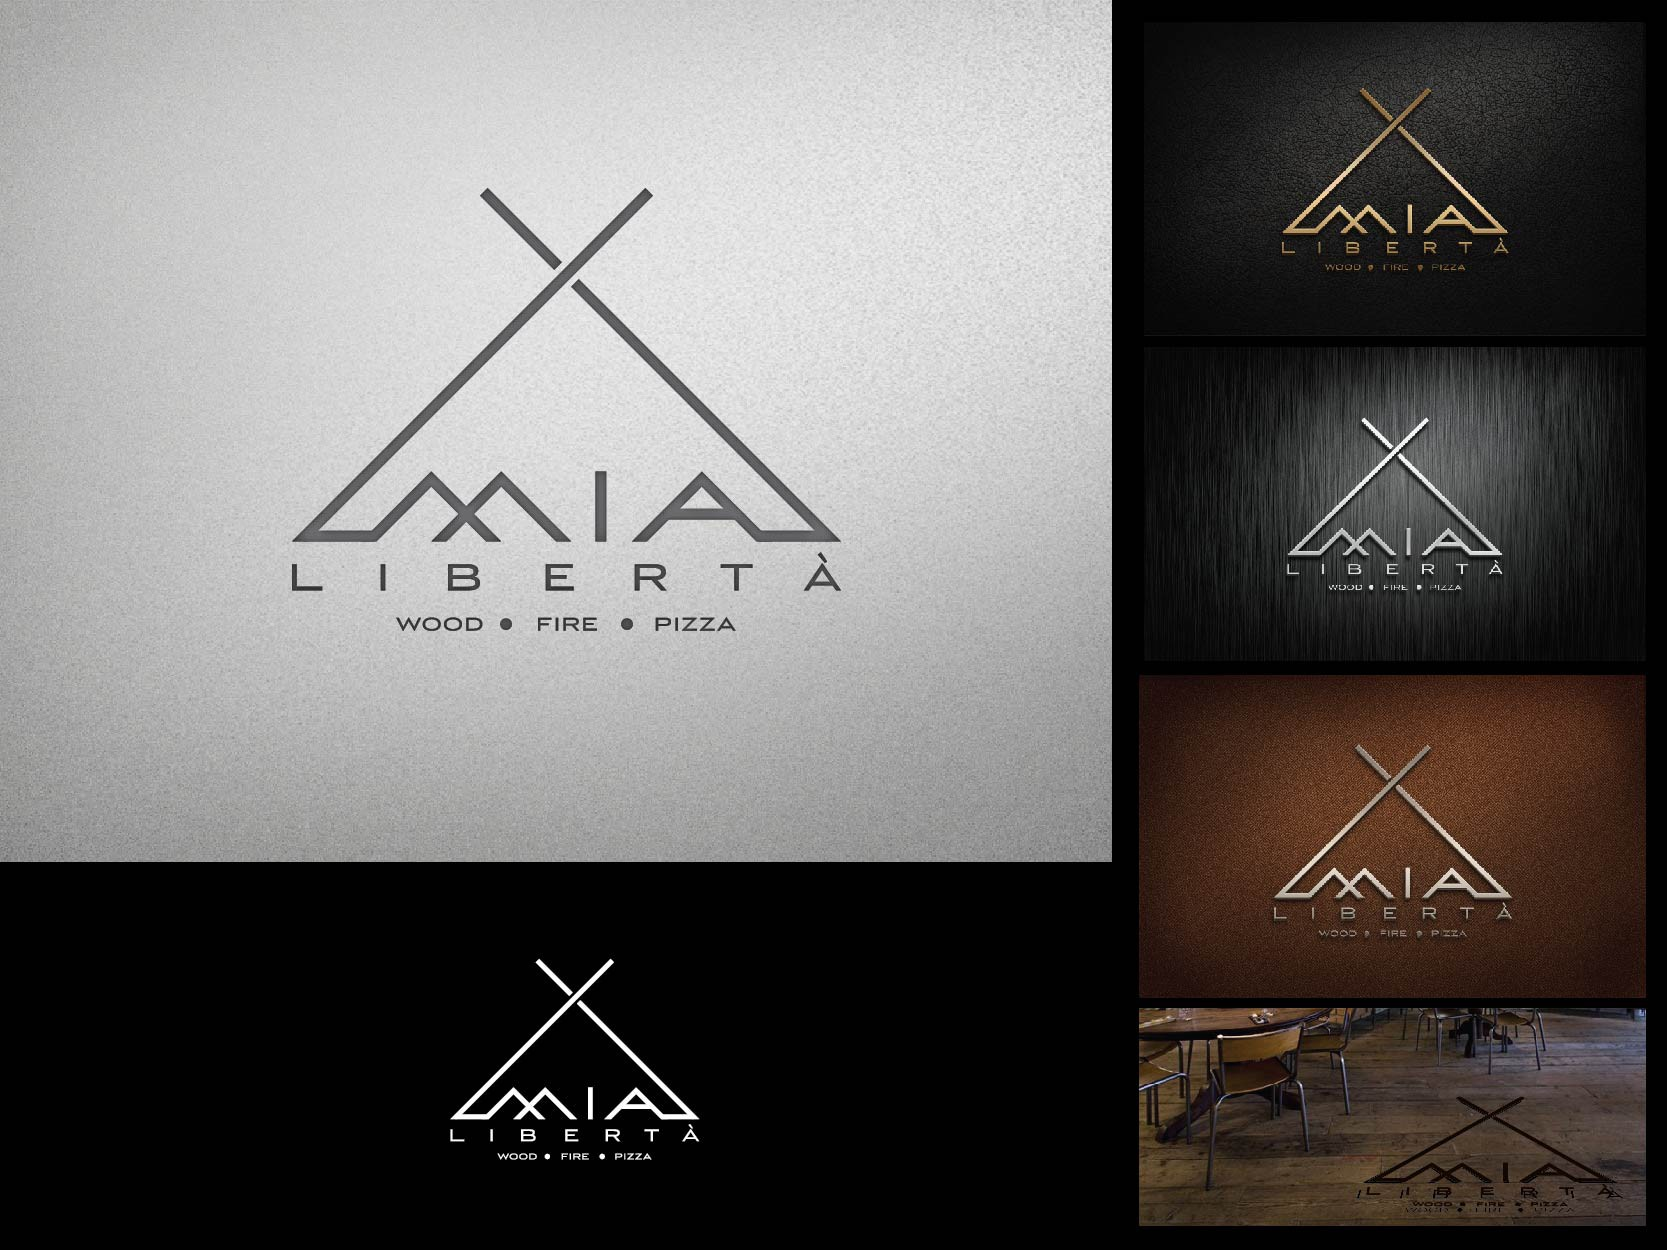 Mia libertà needs a new logo